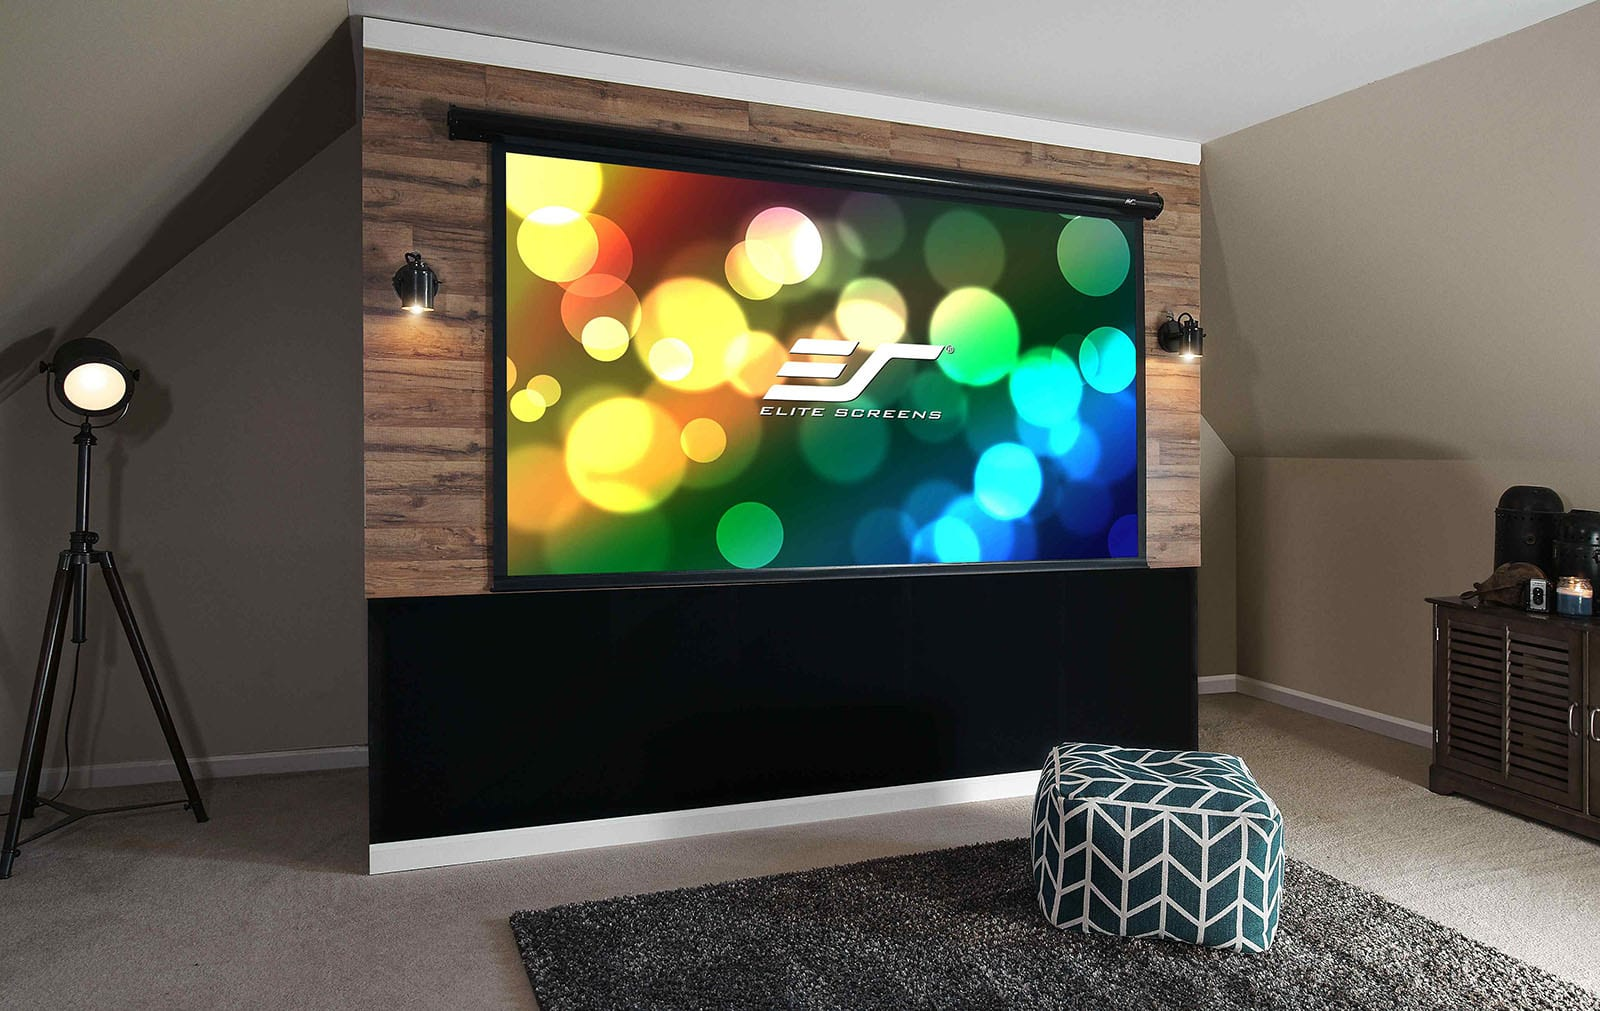 Elite Starling 2 motorized projection screen